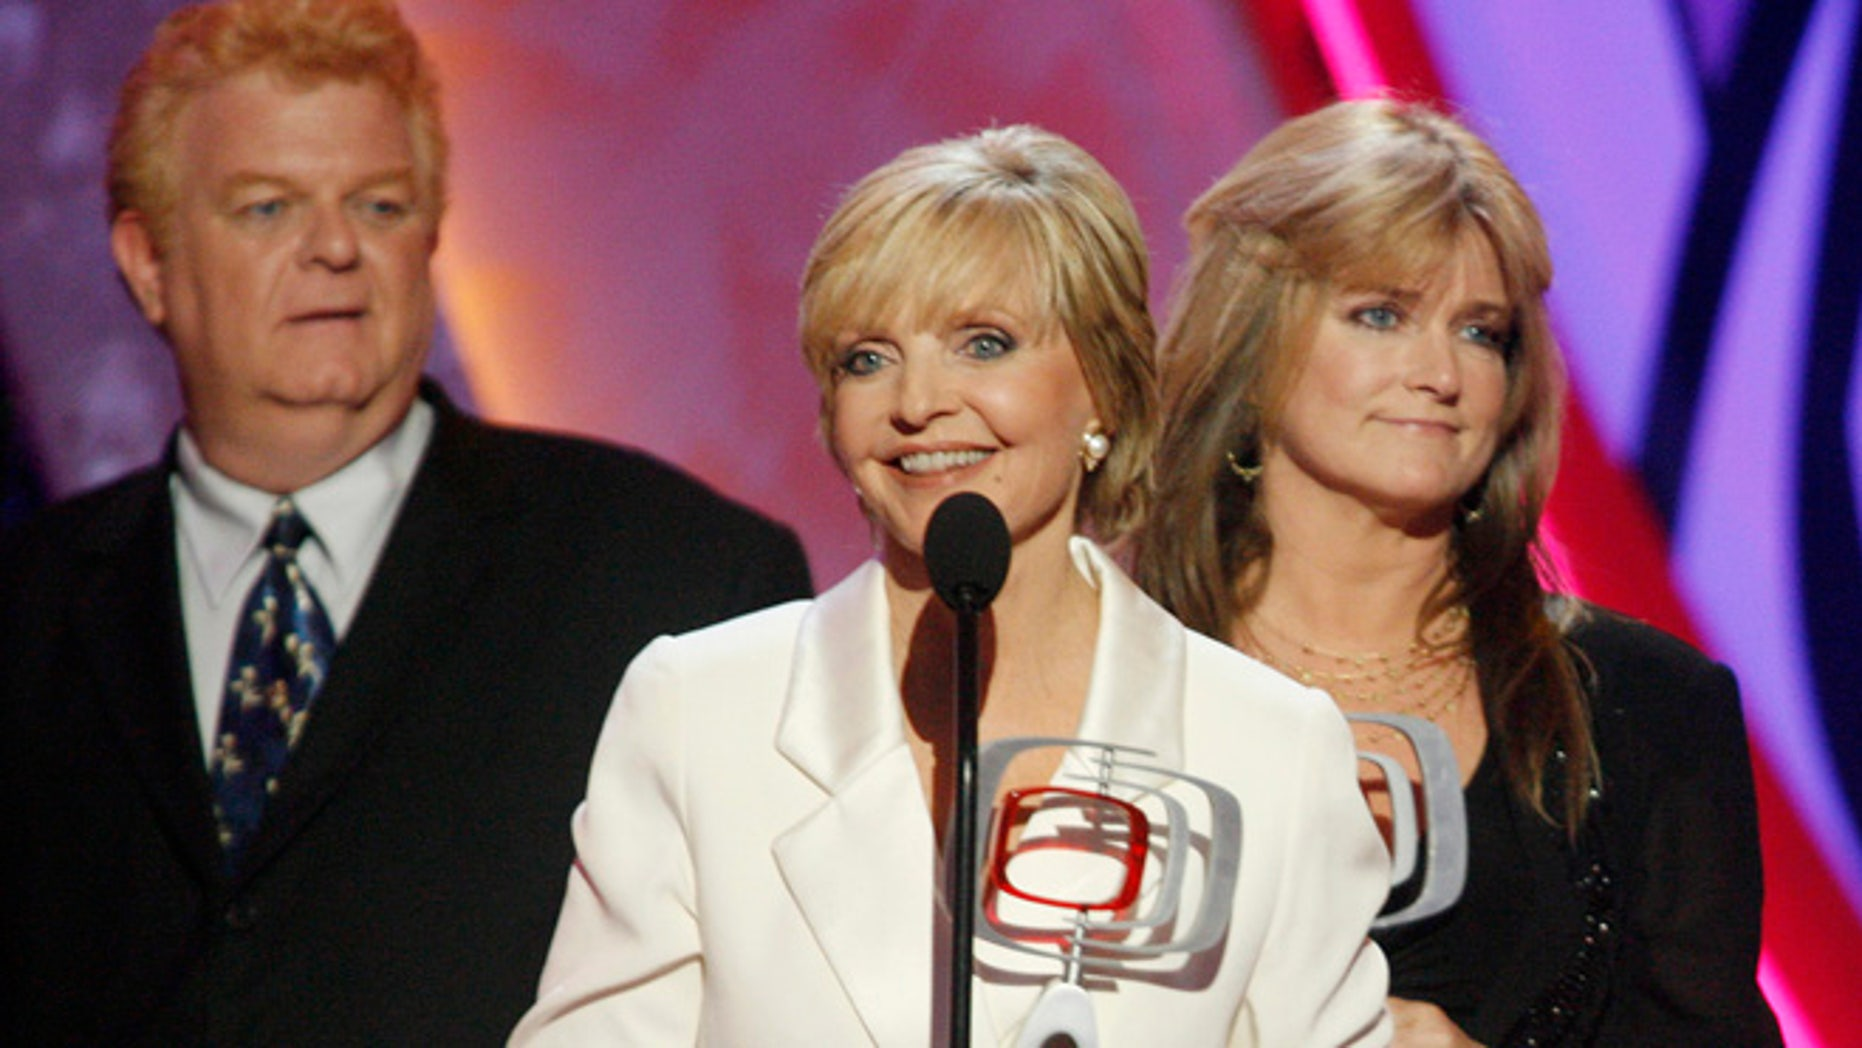 Susan Olsen (right) who played Cindy Brady says her TV mom Florence Henderson saved her life.